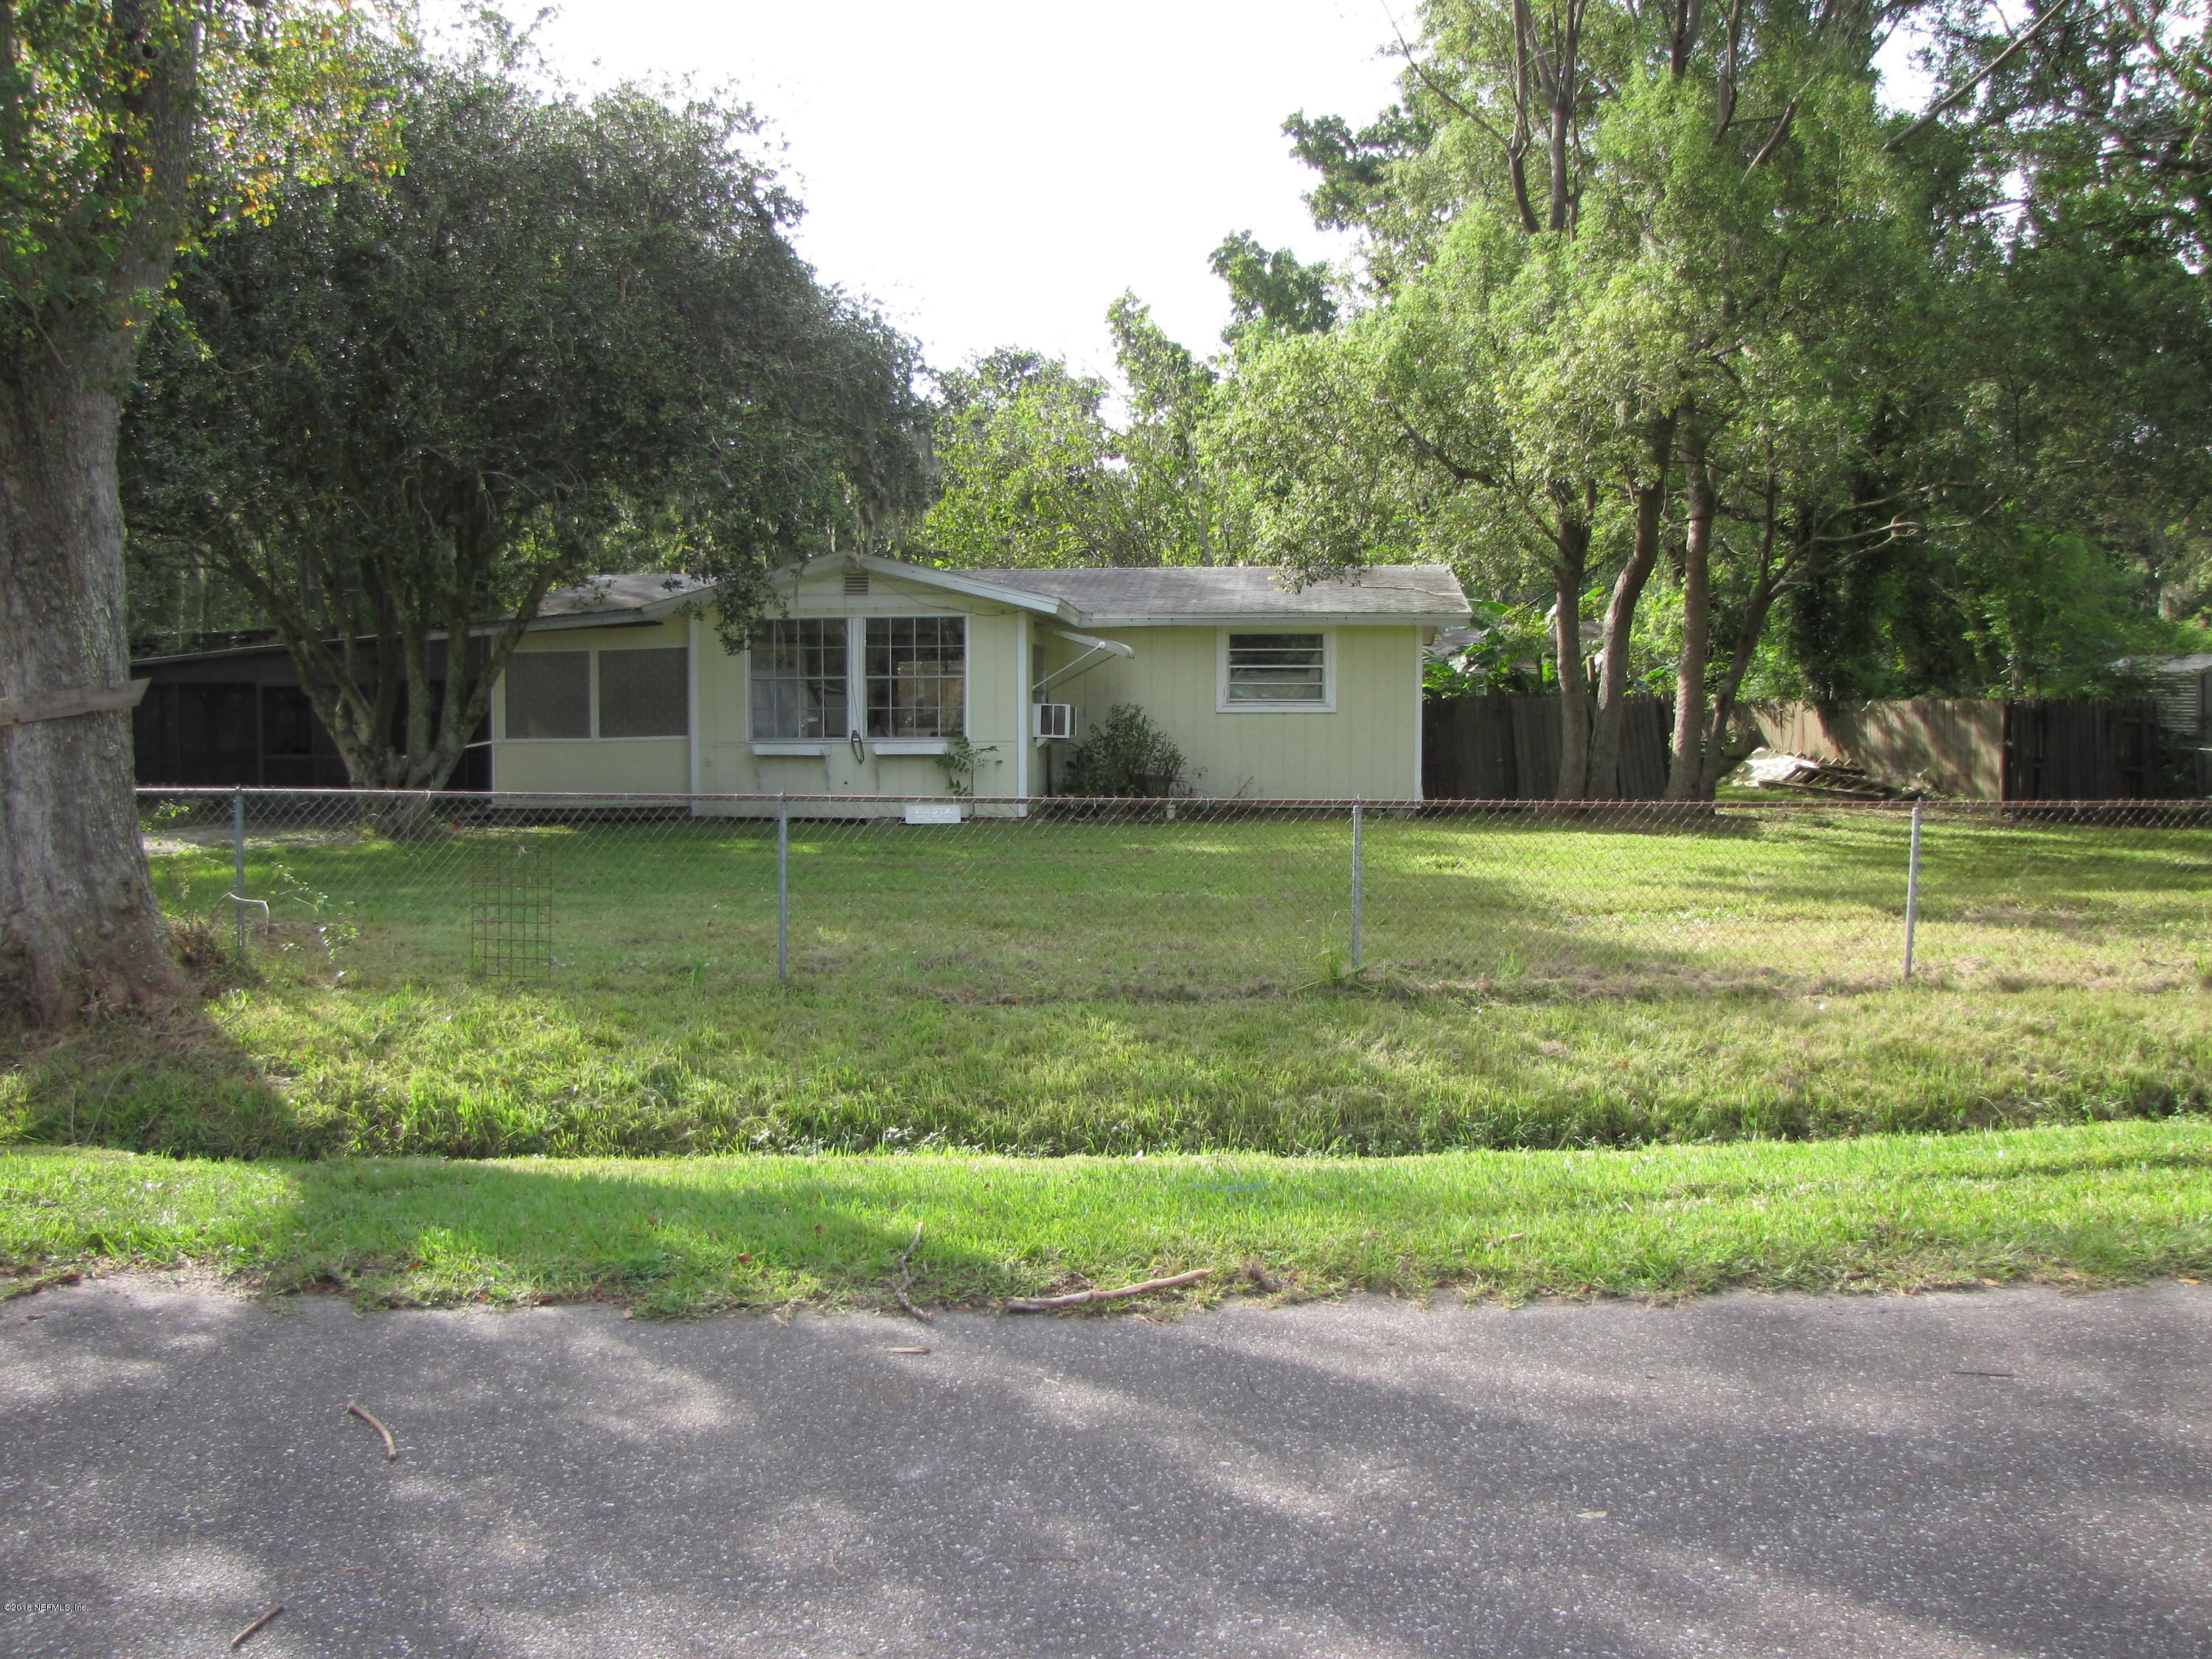 5417 WABASH, JACKSONVILLE, FLORIDA 32254, 3 Bedrooms Bedrooms, ,1 BathroomBathrooms,Residential - single family,For sale,WABASH,964734